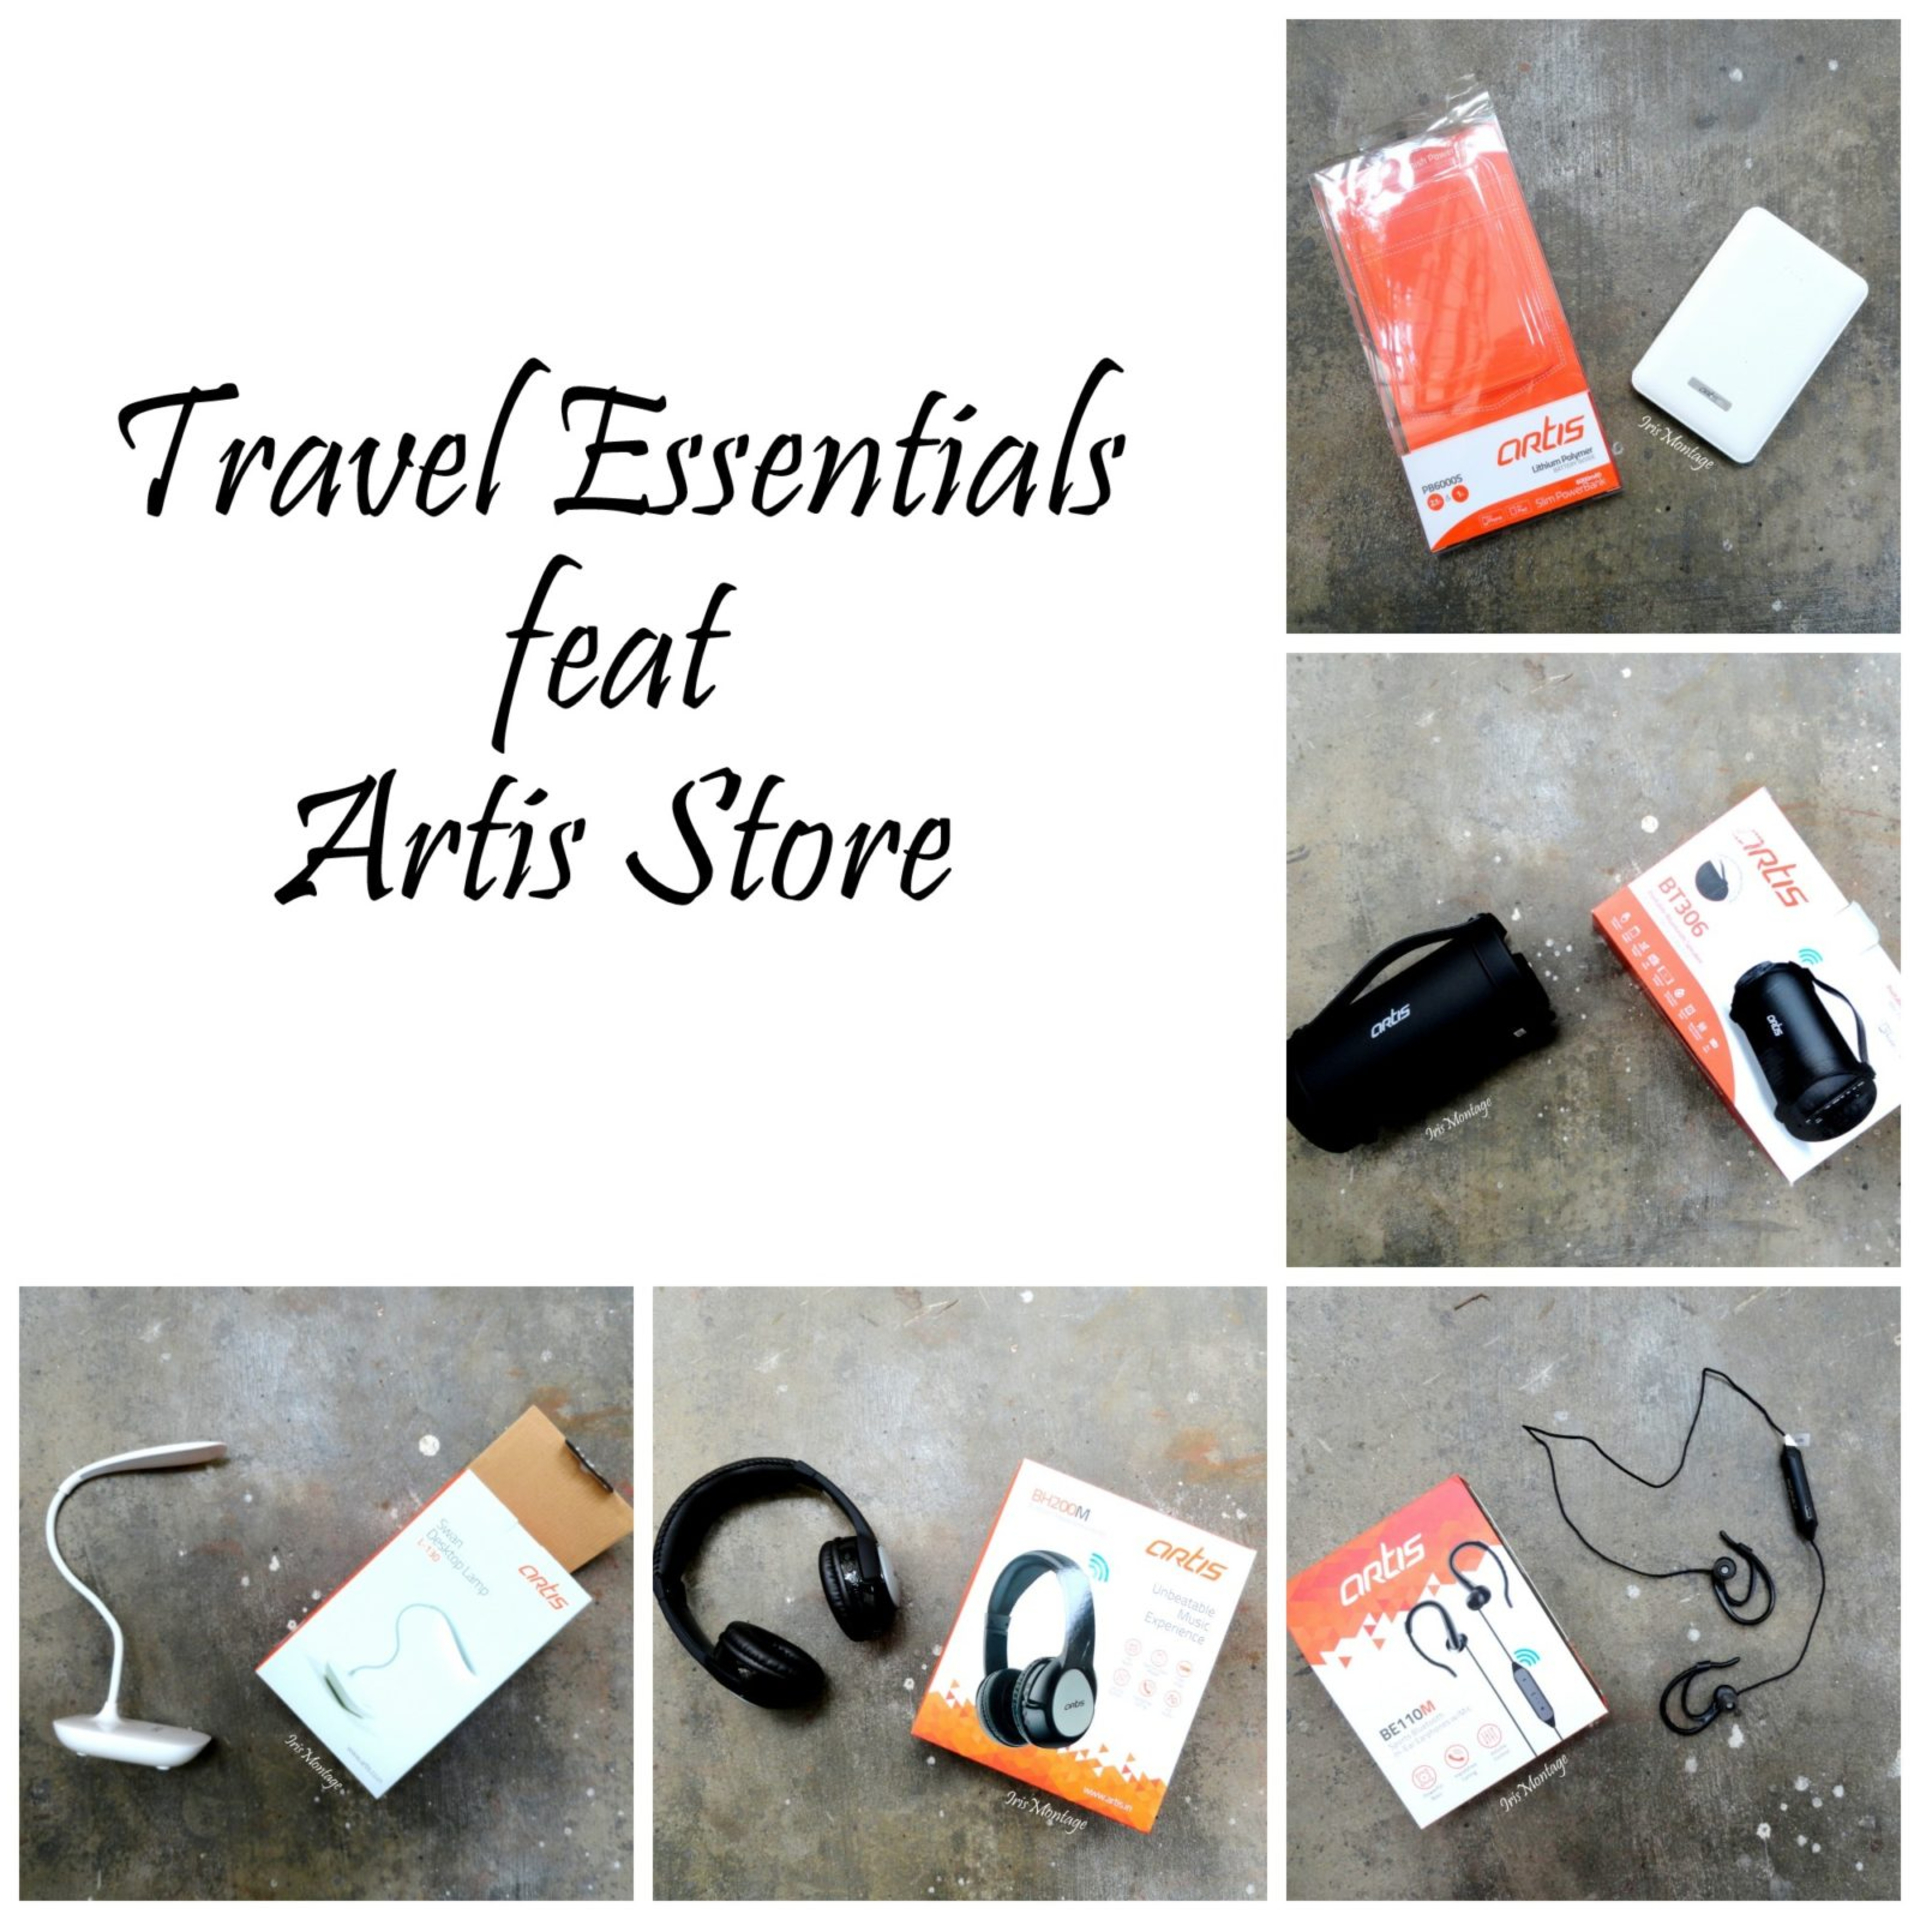 Travel Essentials for all your Travel needs feat Artis Store image